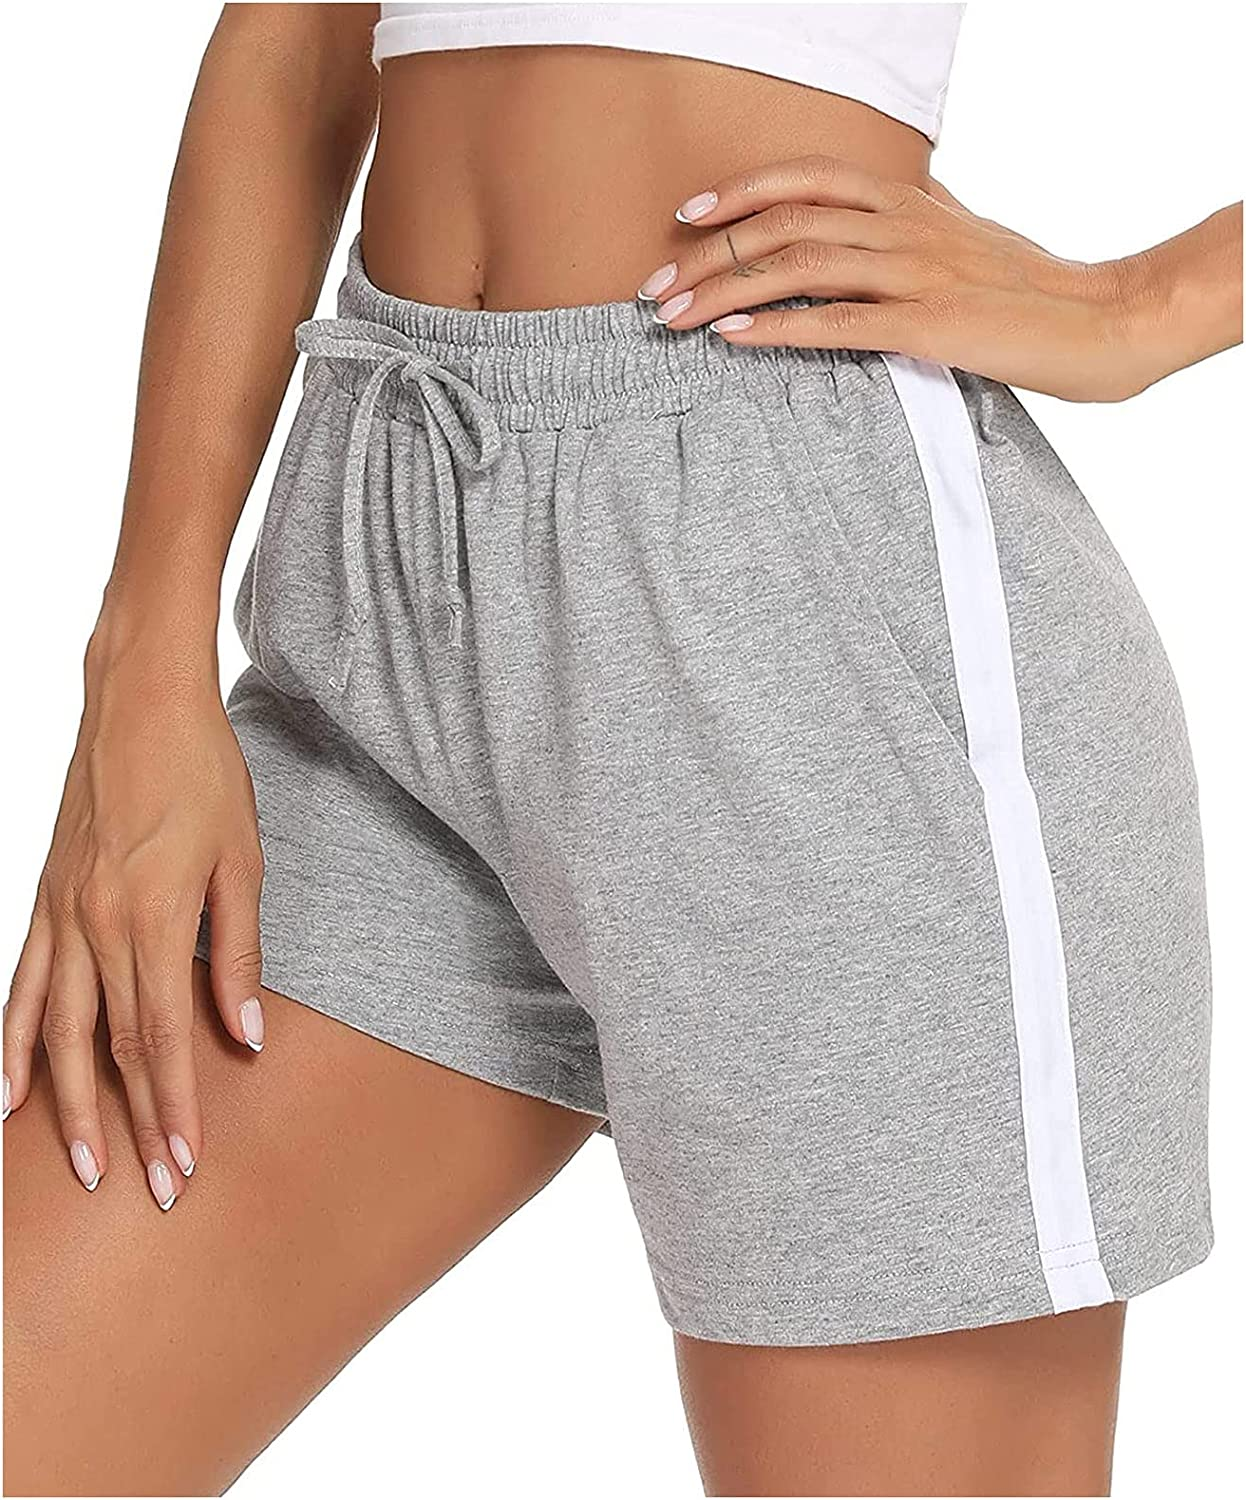 raillery Womens Award Shorts for New arrival Summer Athletic Gym Casual Co Running